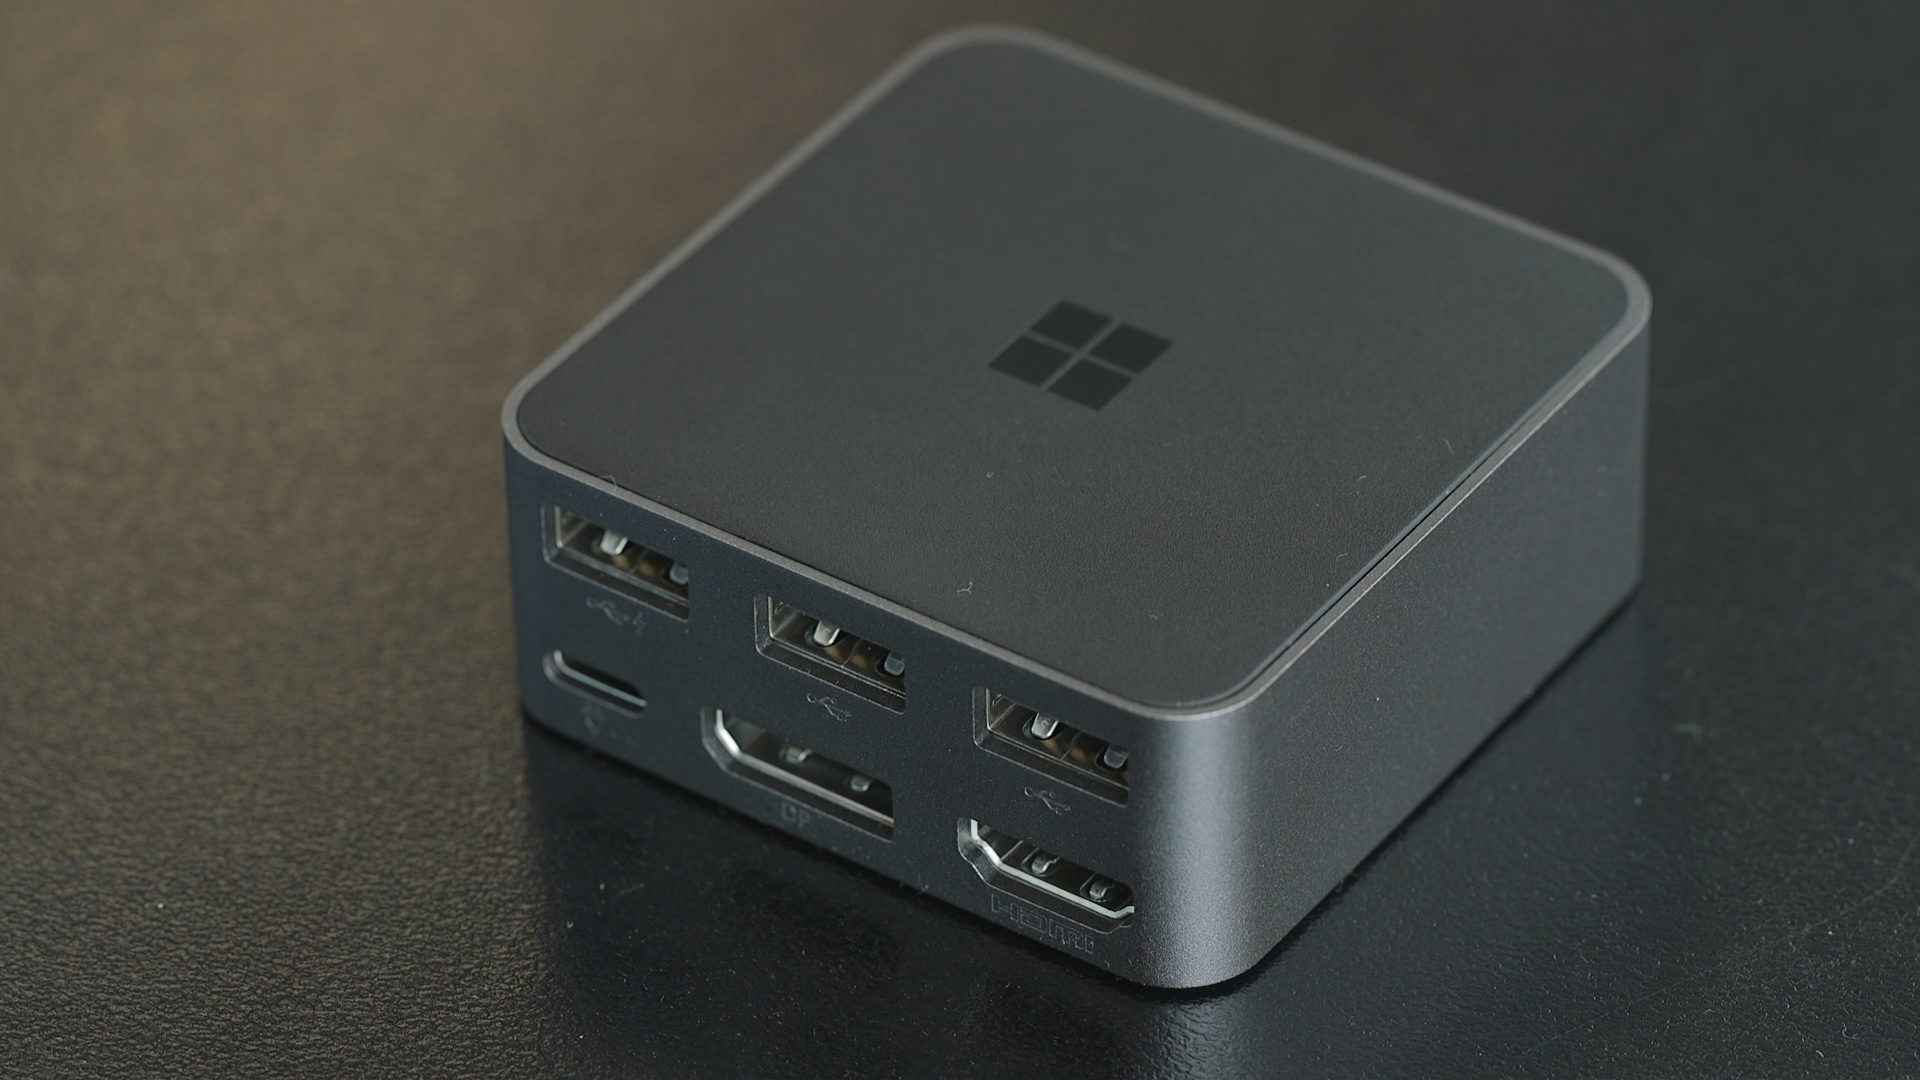 Video: Microsoft's Display Dock lets you get the most out of Continuum